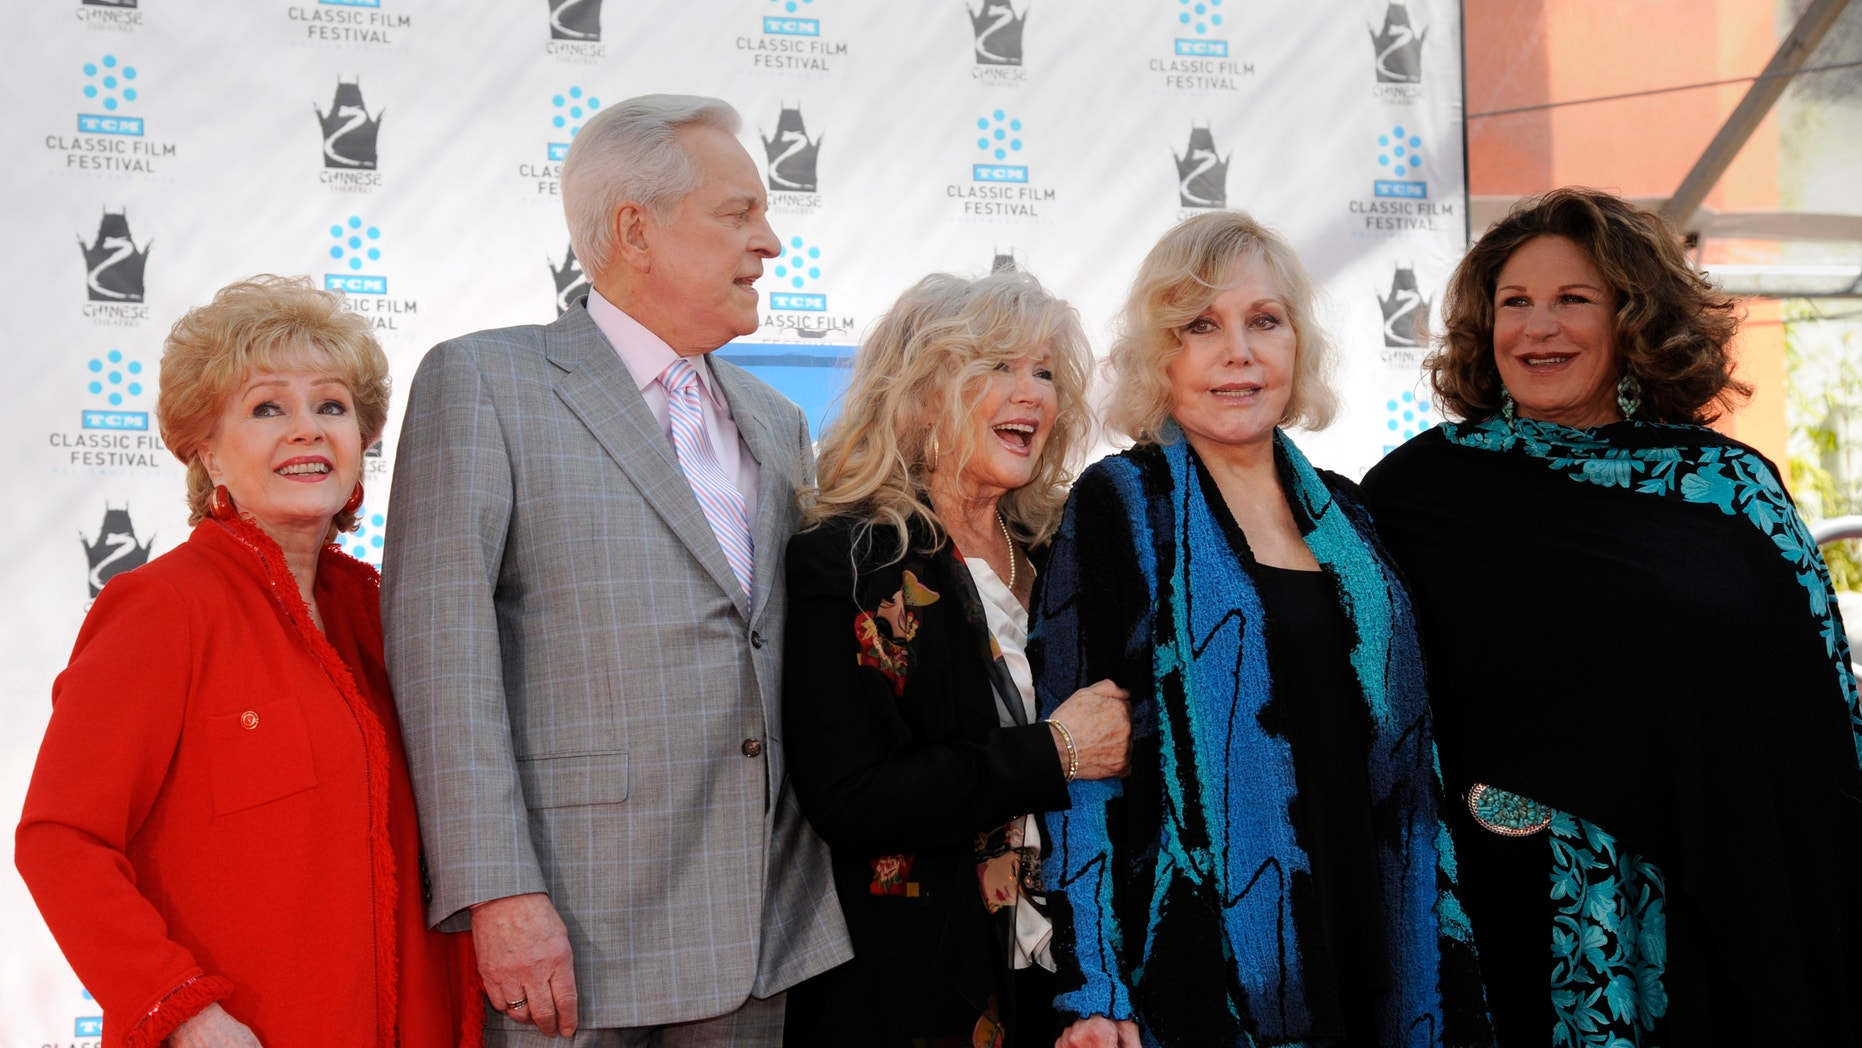 (L-R): Debbie Reynolds , Robert Osborne, Connie Stevens, Kim Novak and Lainie Kazan.